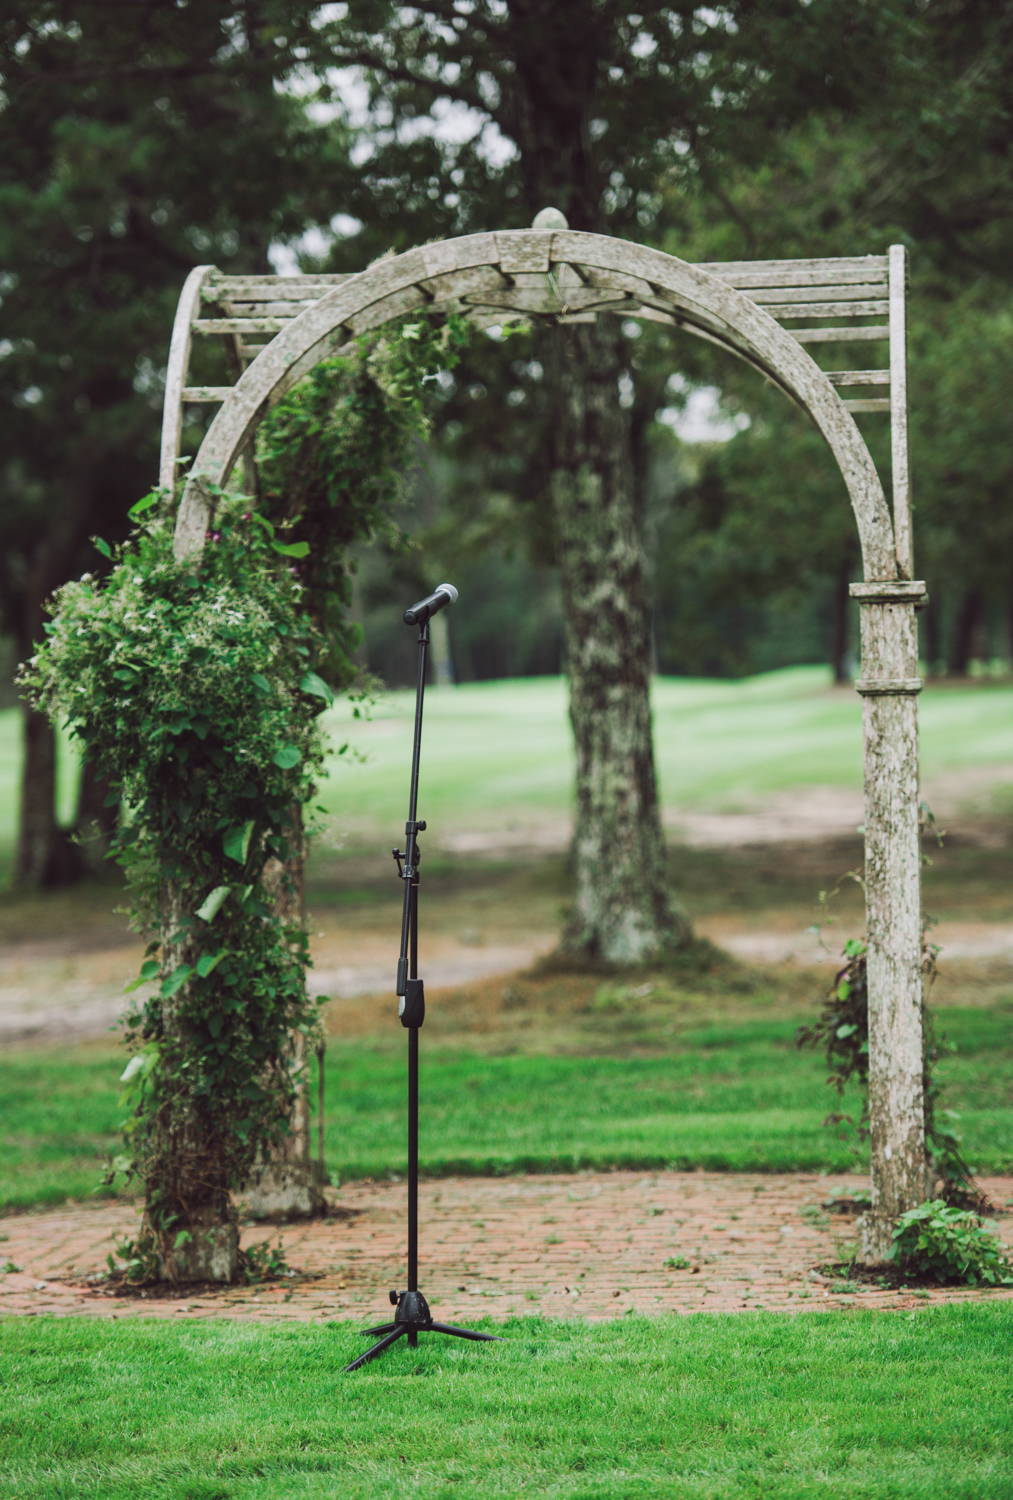 maureen_evan_wedding_marthas_vineyard-9429ceremony_farm_neck_golf_club_ceremony_farm_neck_golf_club.jpg